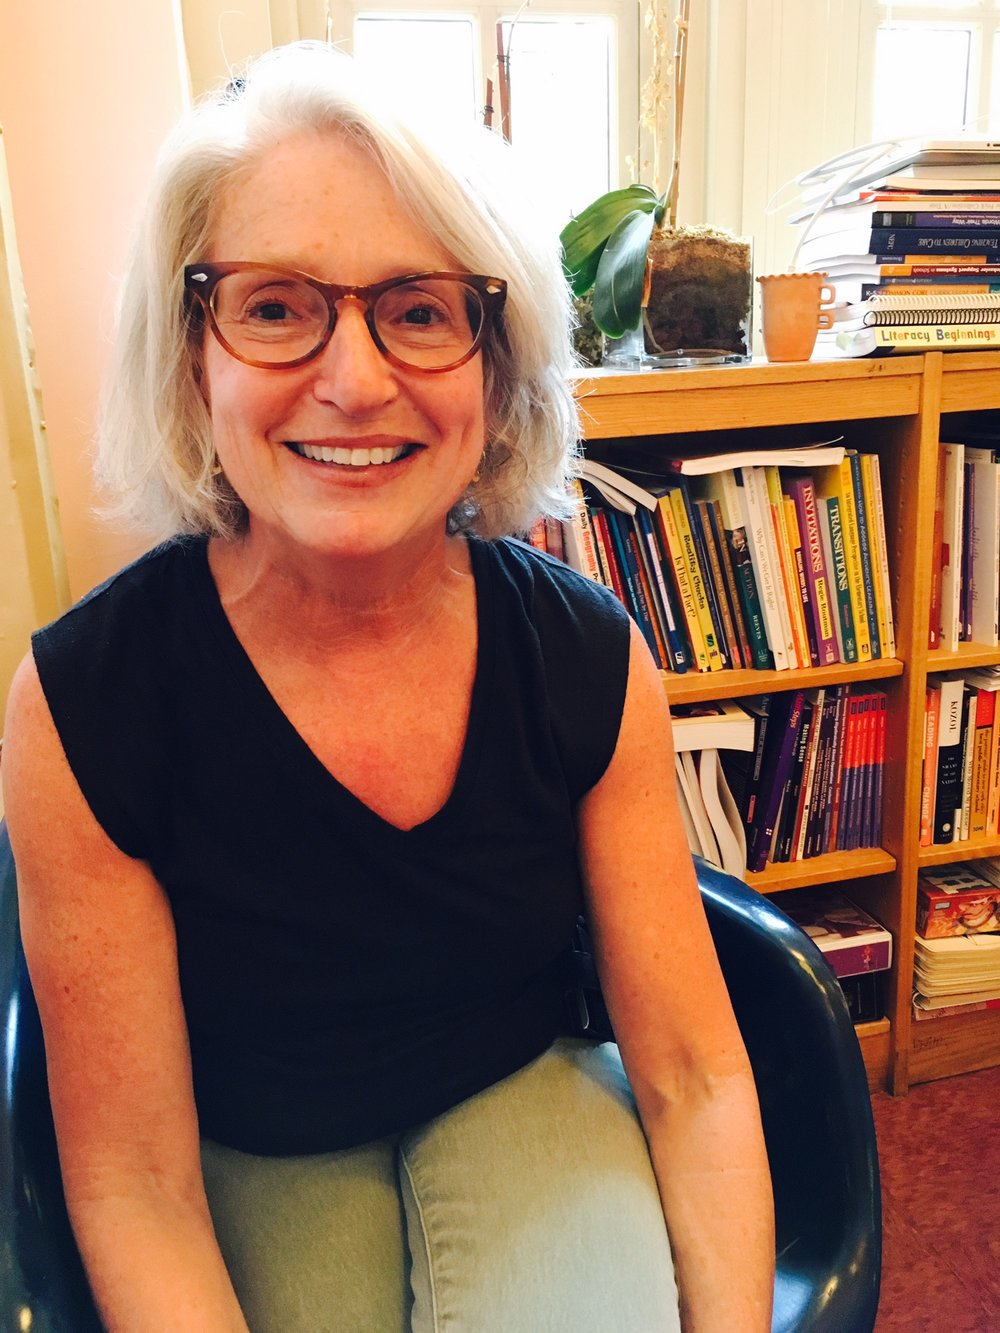 PRINCIPAL | KAREN FEUER - Email: KFeuer@schools.nyc.gov Karen Feuer joined PS 110 in 2009 with over 30 years of experience in education. She has held various positions that include administering the office of School Food Service at the Board of Jewish Education, teaching pre-school as well as elementary school in Manhattan and the South Bronx, supervising parent support in Districts 20, 21, and 31, and serving on the Community School Board in District Two — advocating for public schools and setting educational policy in the district.Karen was born in the Bronx and attended public schools her whole life. She has a Bachelor of Science from New York University in Art Education; a Masters in Early Childhood and Elementary Education also from New York University and a Master in Supervision and Administration from Baruch College's Aspiring Leadership Program. She was an Assistant Principal for two years on Manhattan's Upper East Side at PS 183.Karen raised her two children in Manhattan and they both attended public schools. She thinks public education in New York City is the best in the nation.